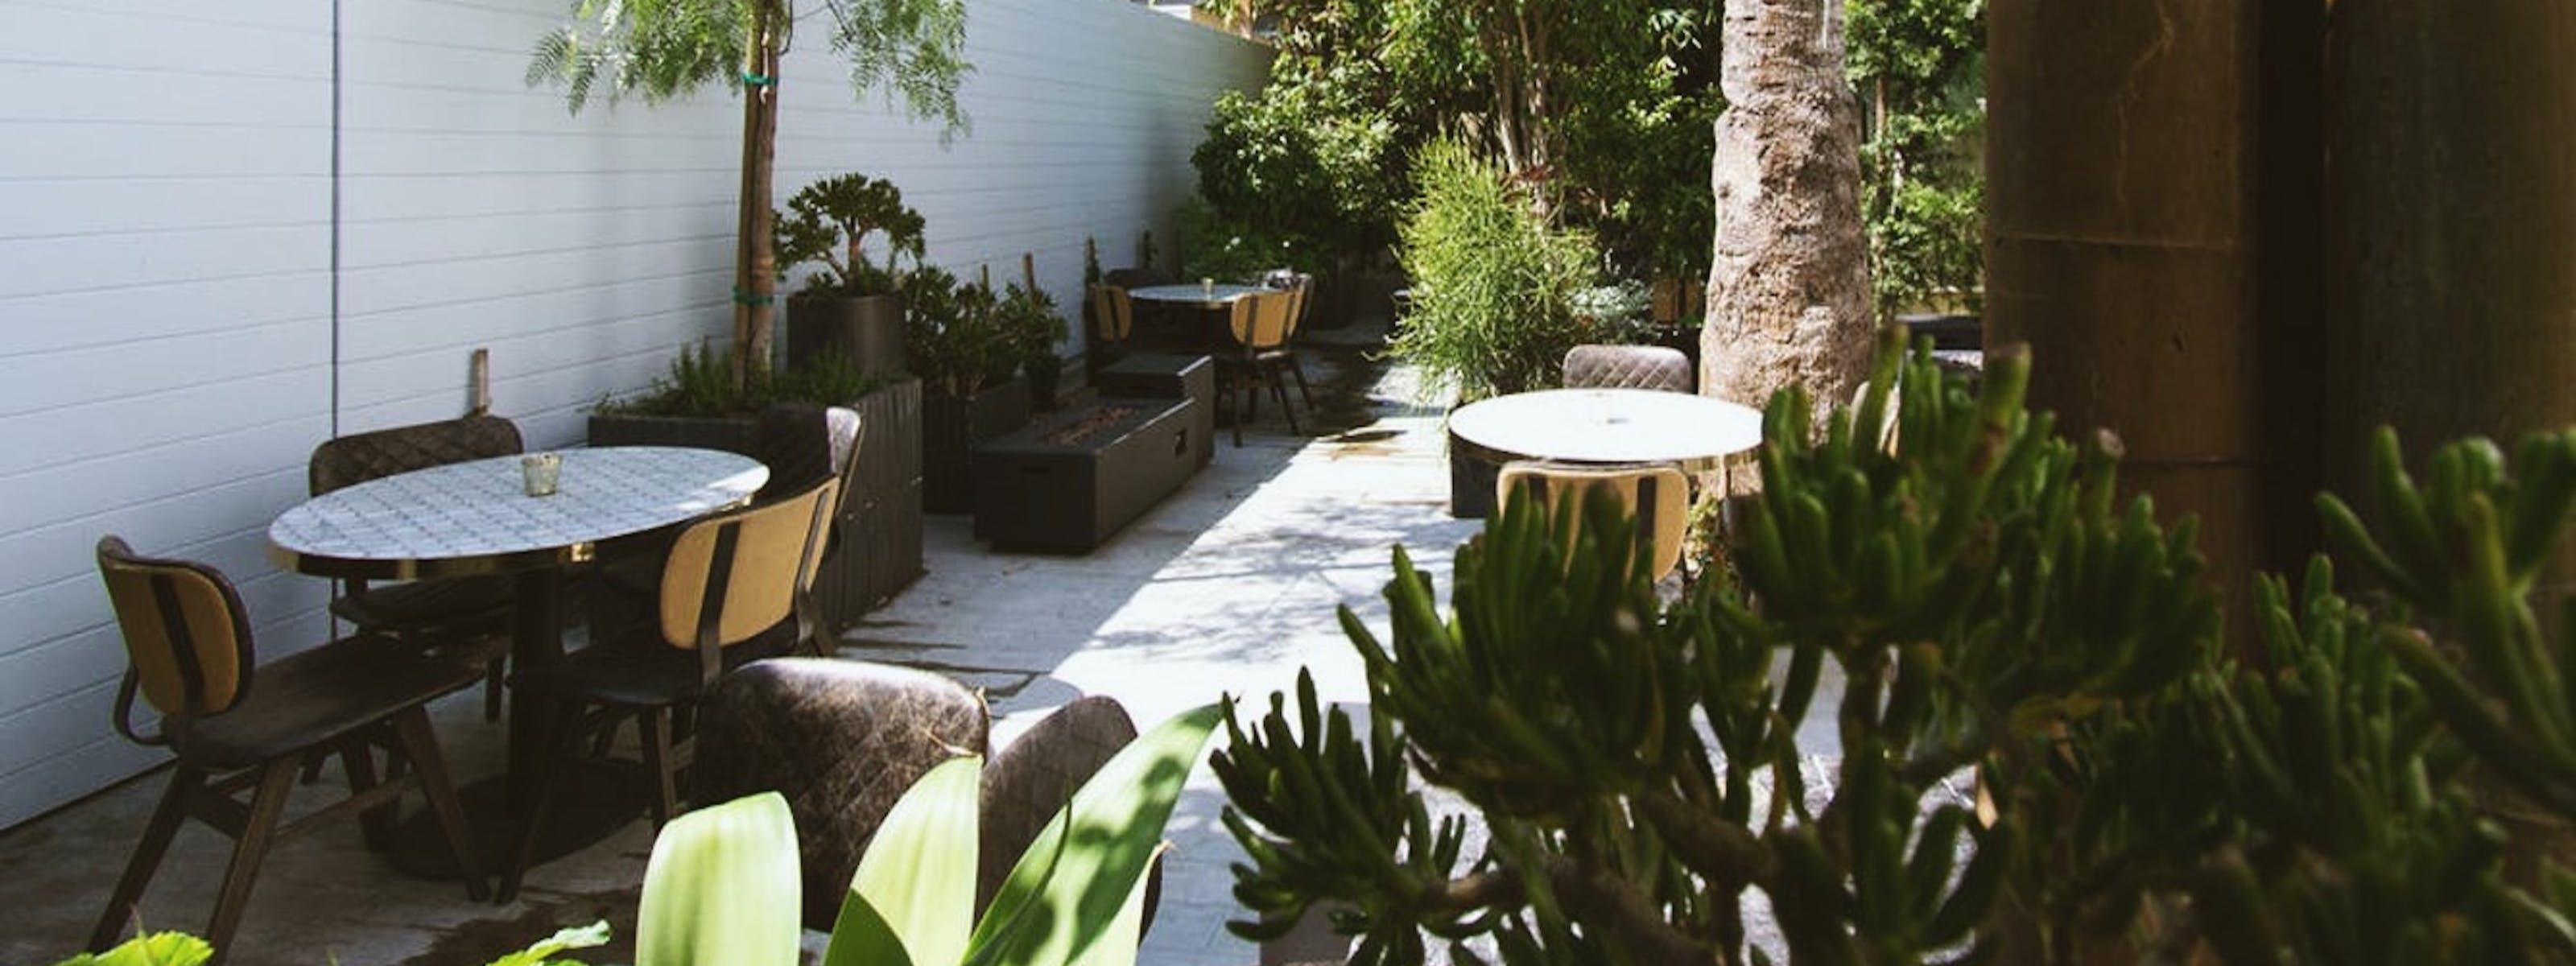 80+ Restaurants With New Outdoor Dining Options In LA - Los Angeles - The Infatuation